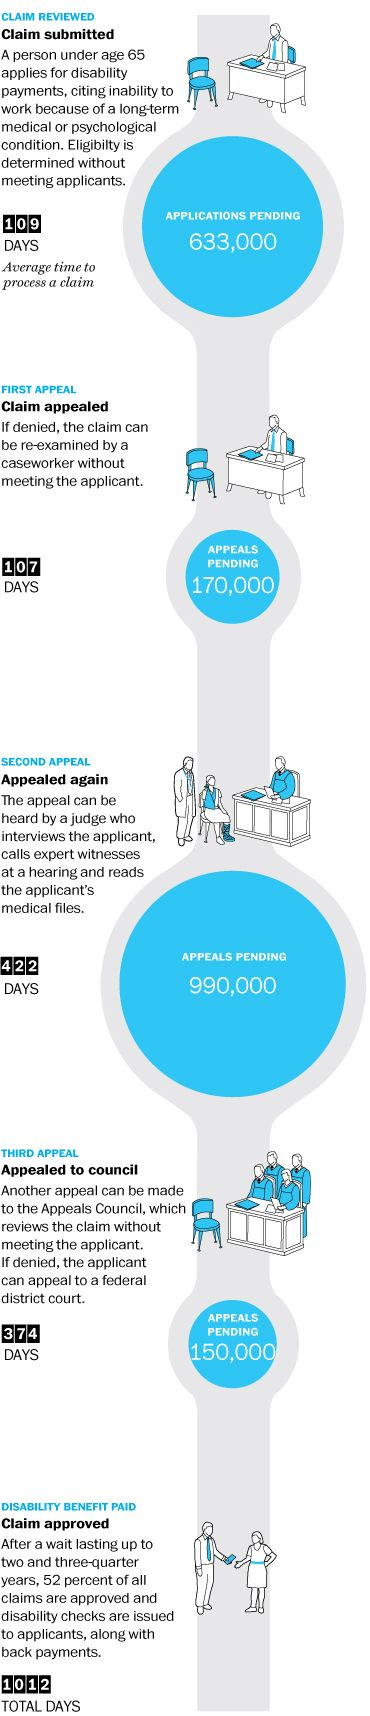 """THE WASHINGTON POST  Published on October 18, 2014 """"Social Security office of judges who hear appeals for disability benefits is 990,399 cases behind"""" http://www.washingtonpost.com/sf/national/2014/10/18/the-biggest-backlog-in-the-federal-government/"""